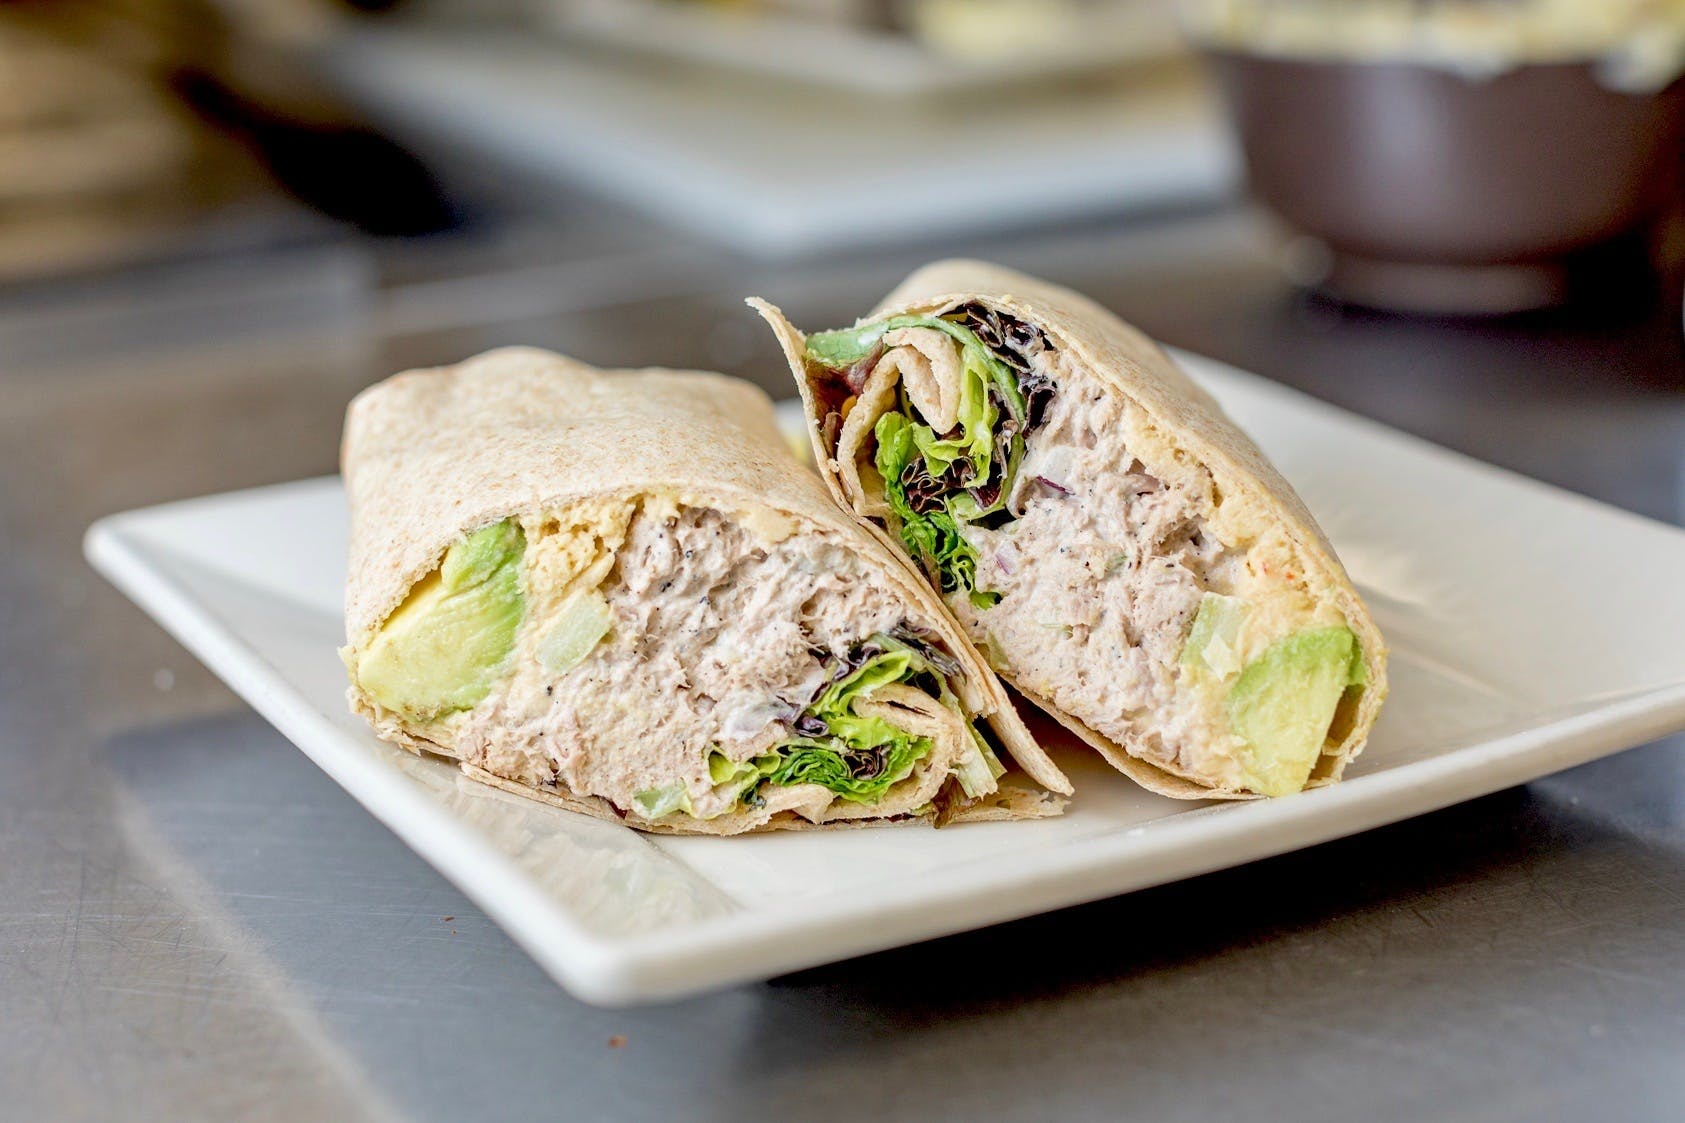 Tuna & Hummus Wrap from The French Press in Eau Claire, WI